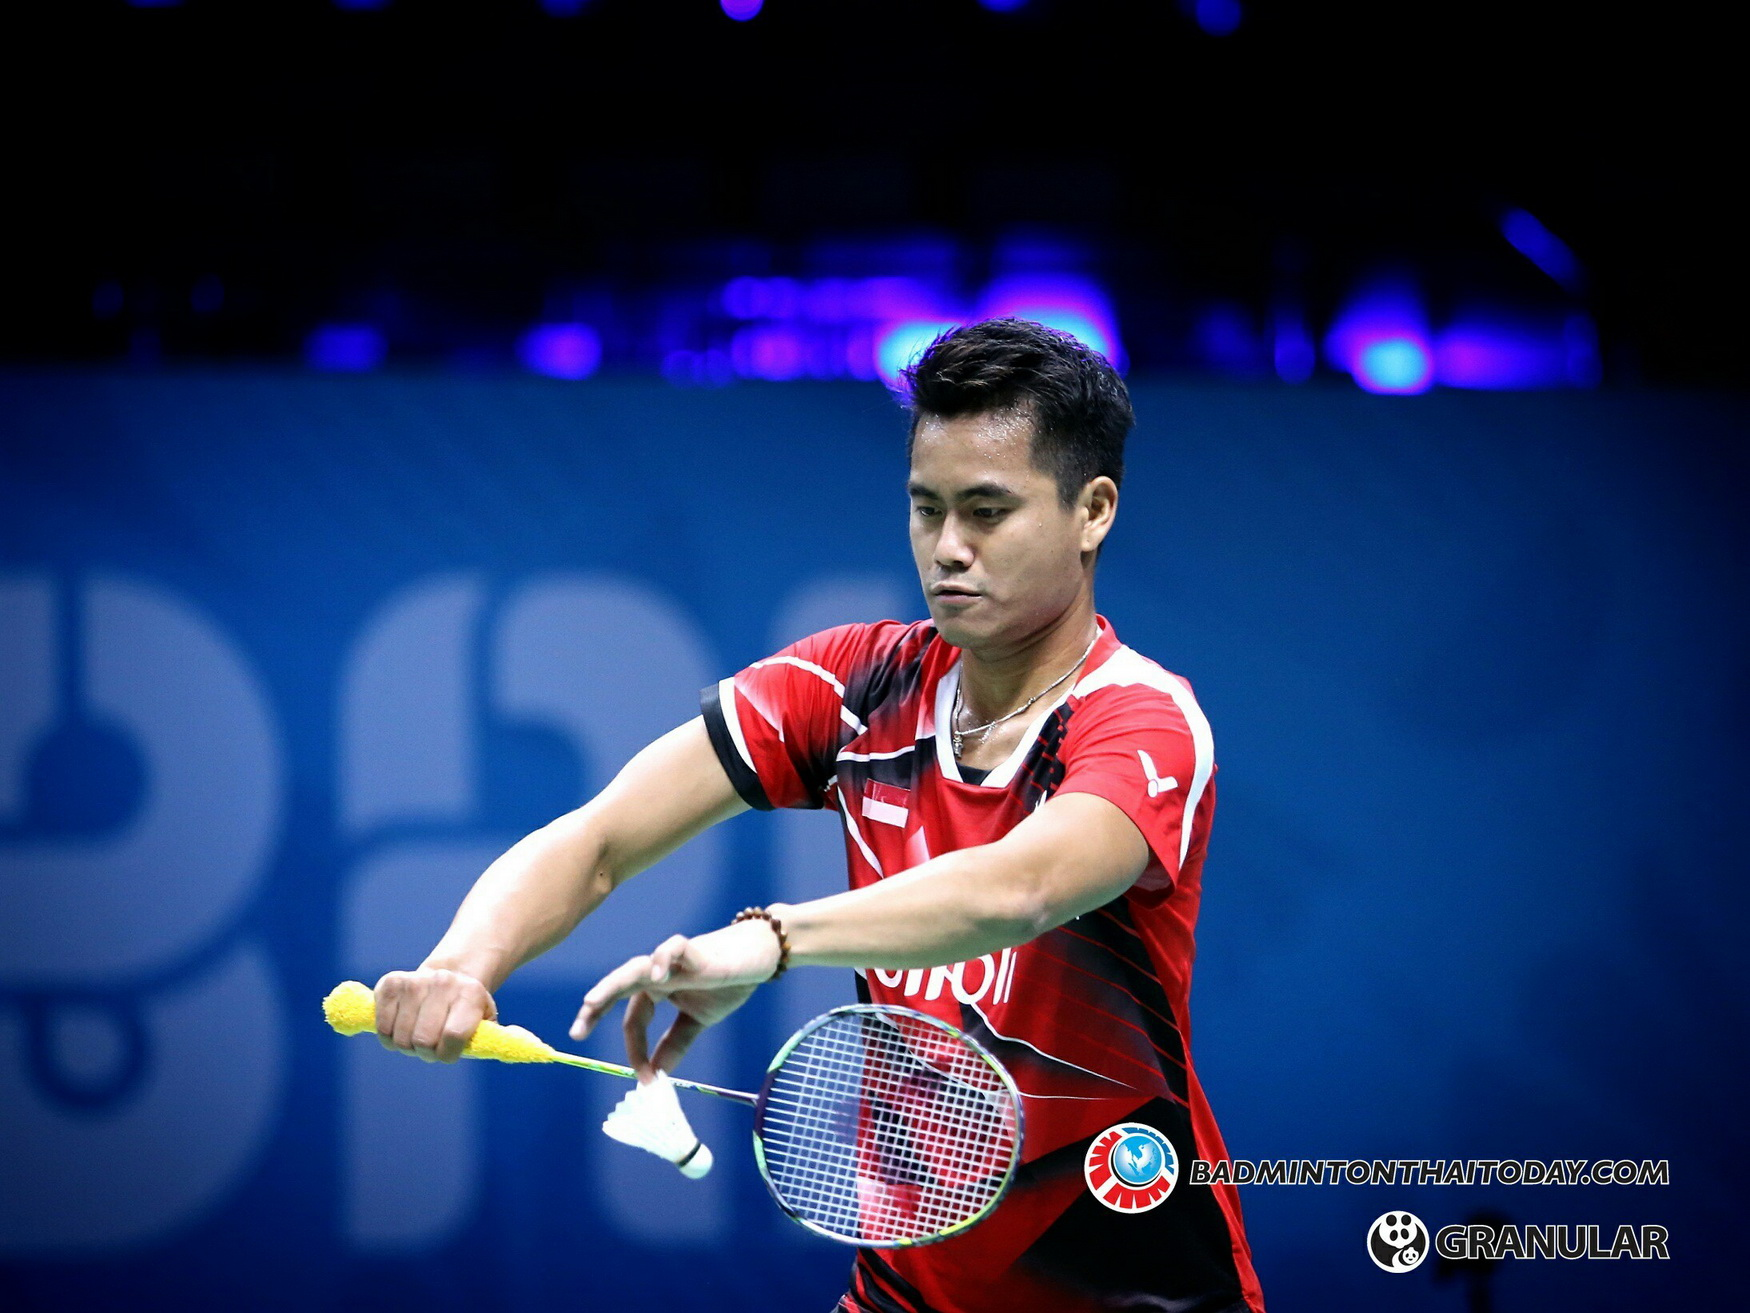 Tontowi Ahmad - Liliyana Natsir @ Dubai World Superseries Final 2016 รูปภาพกีฬาแบดมินตัน